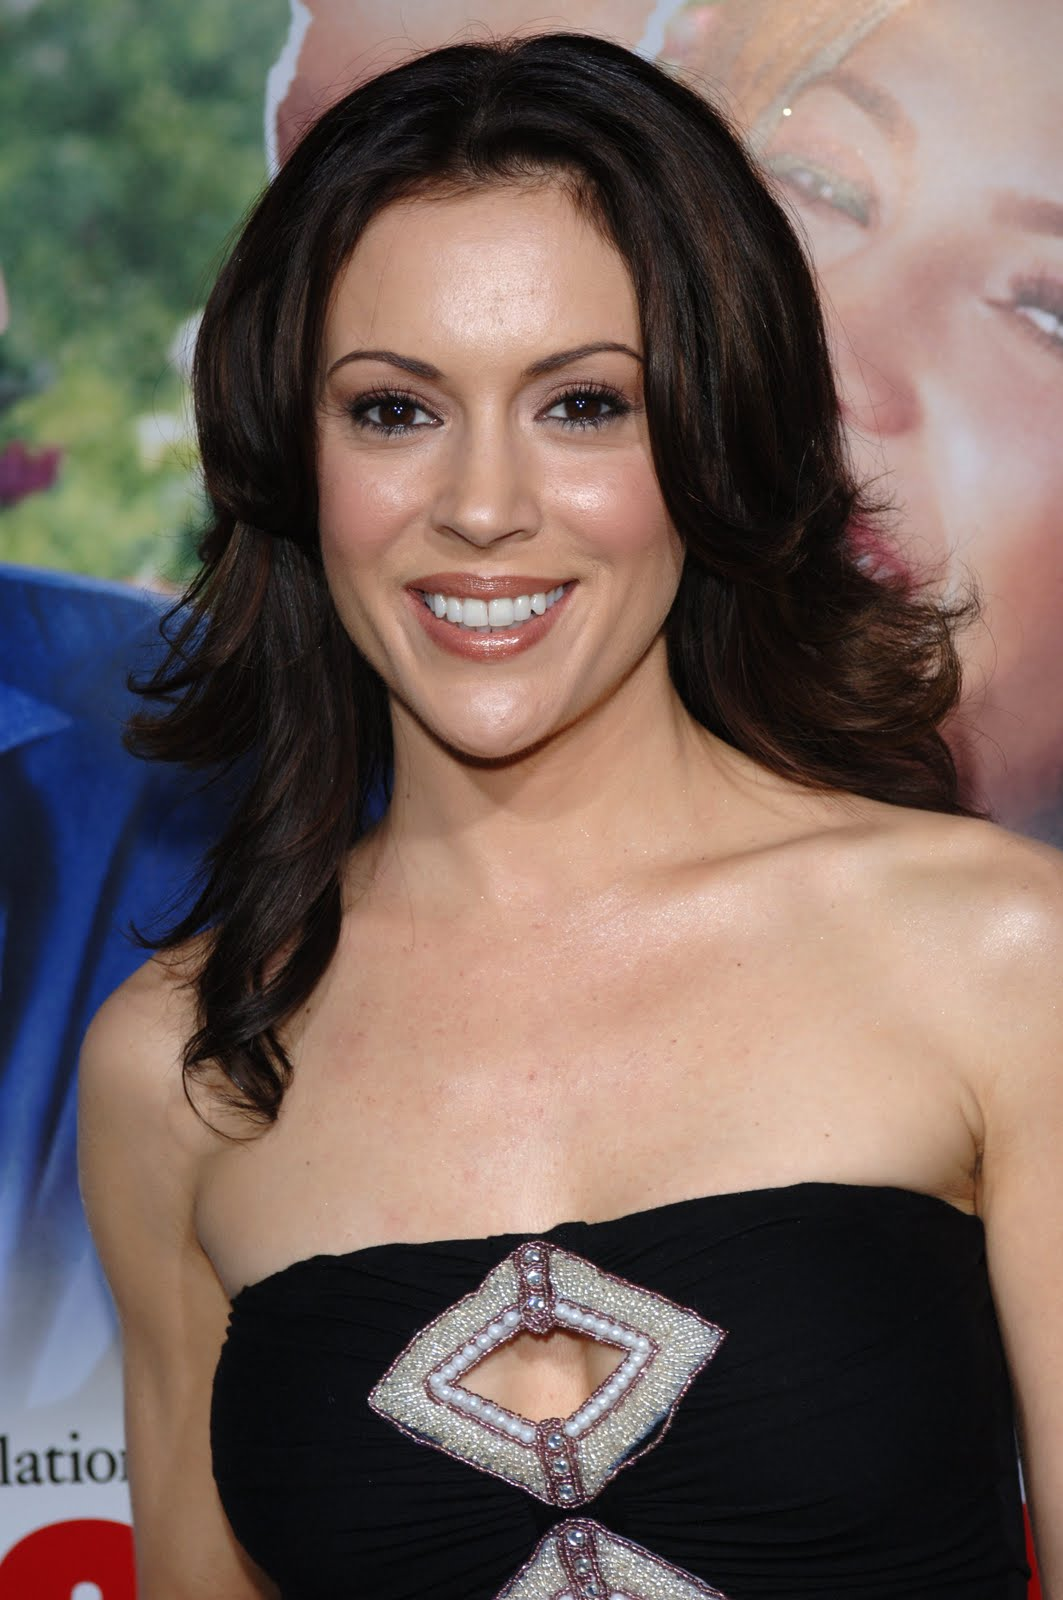 Pm Bedroom Gallery Alyssa Milano Images All Celebrity Post